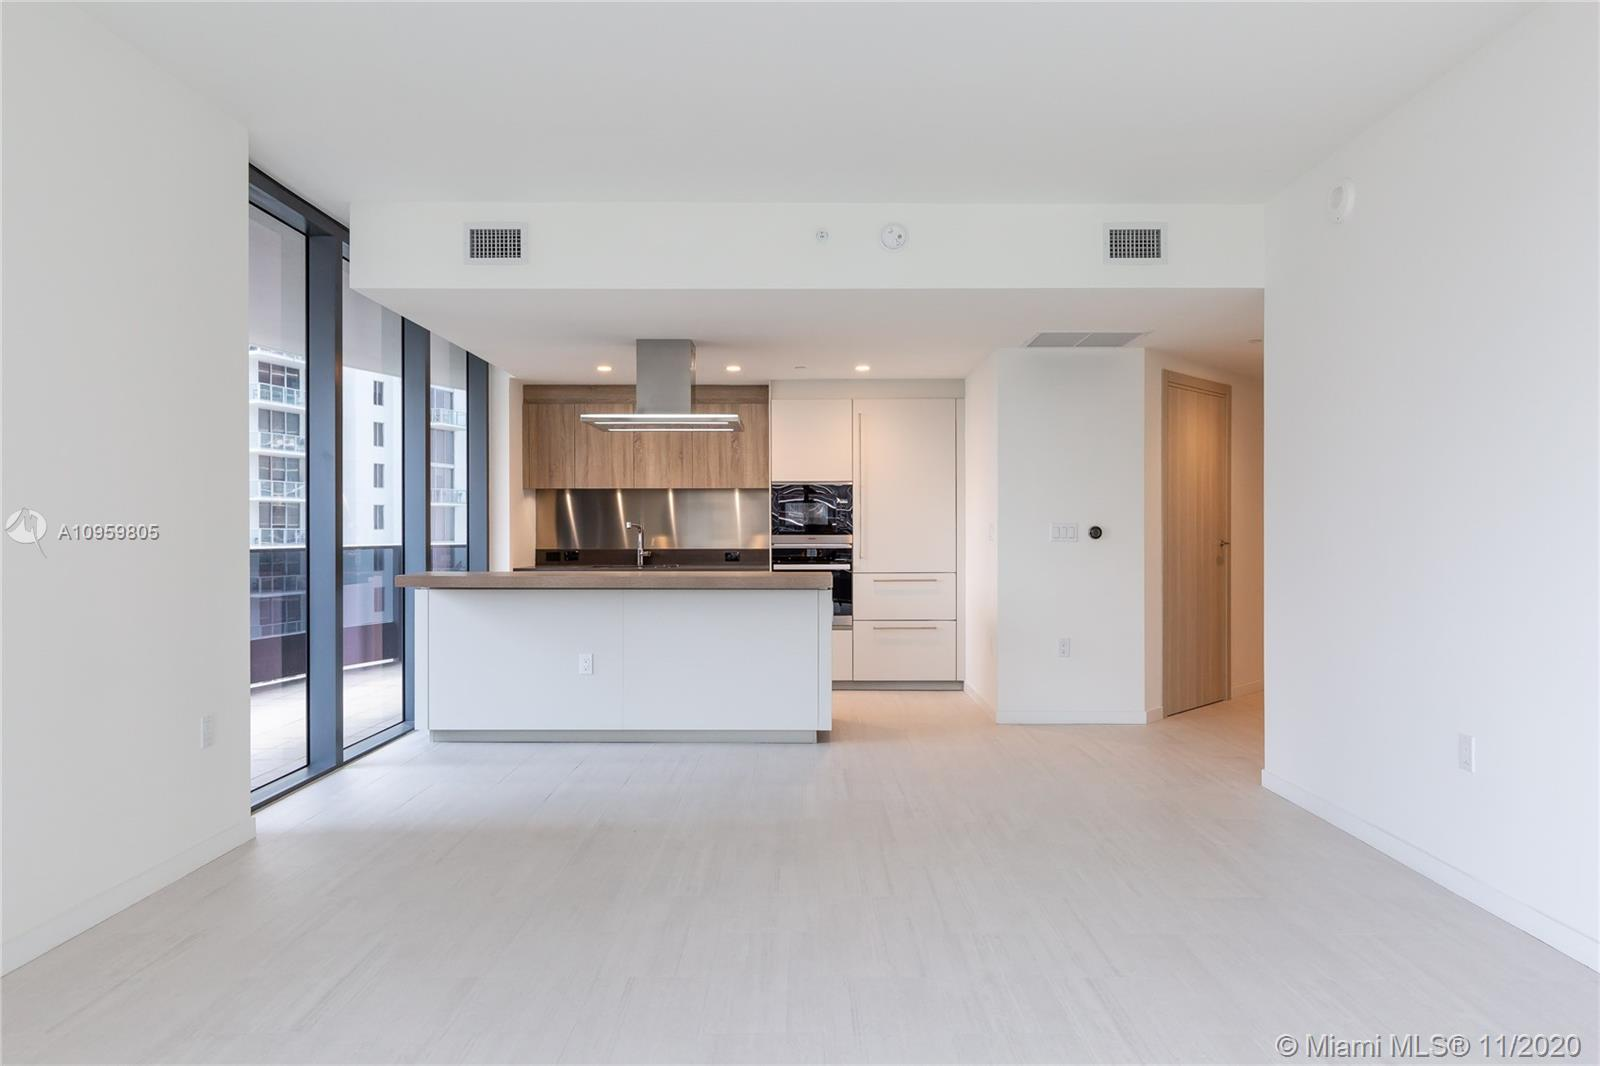 2 Bedroom, 2.5 Bath Plus Den in the center of Brickell. Brickell Flatiron is Brickell's newest and m